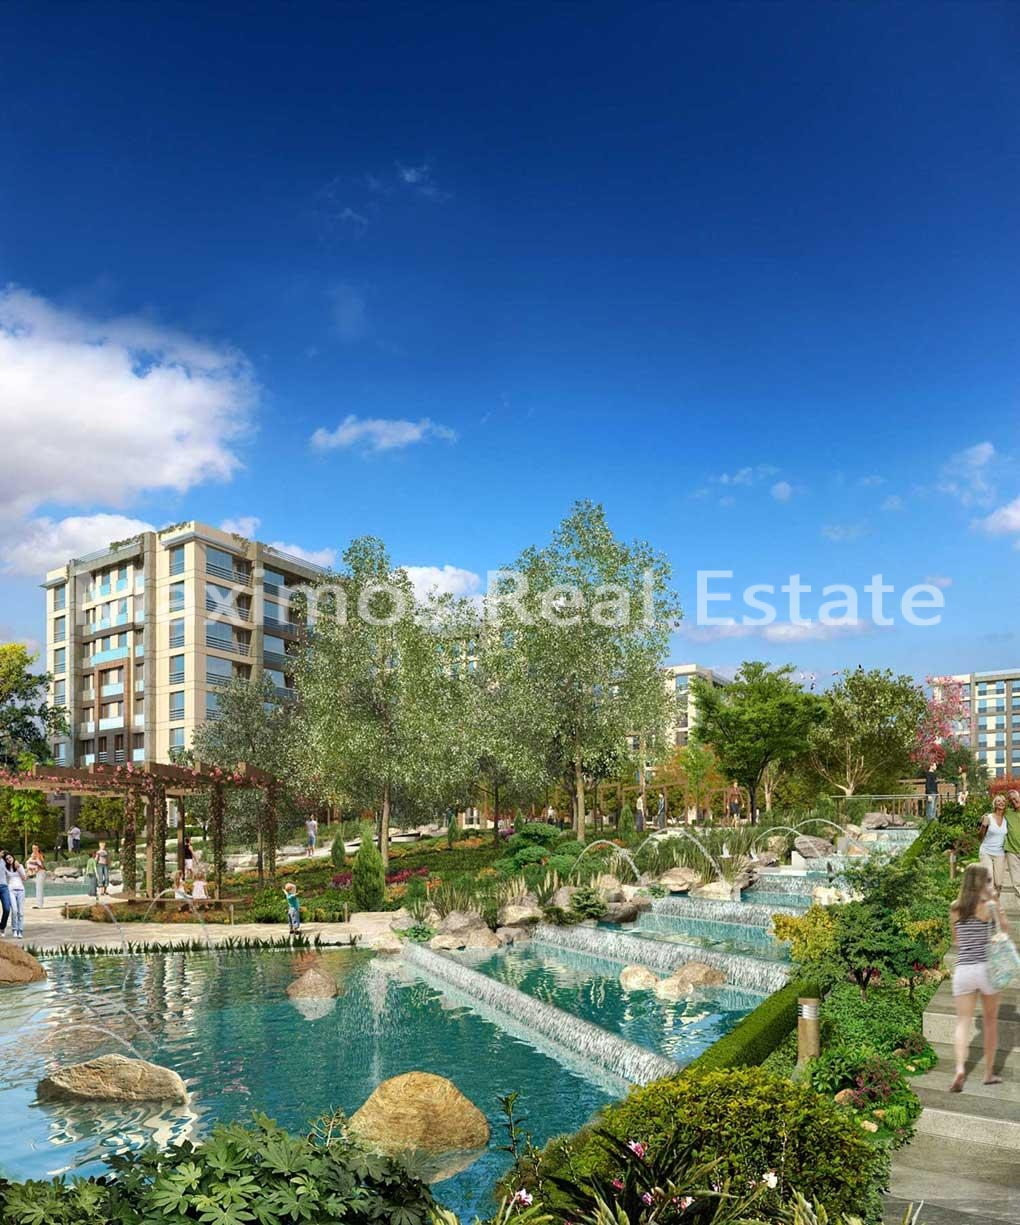 Buy Maximos Real Estate Property In Istanbul Turkey | Maximos Properties photos #1